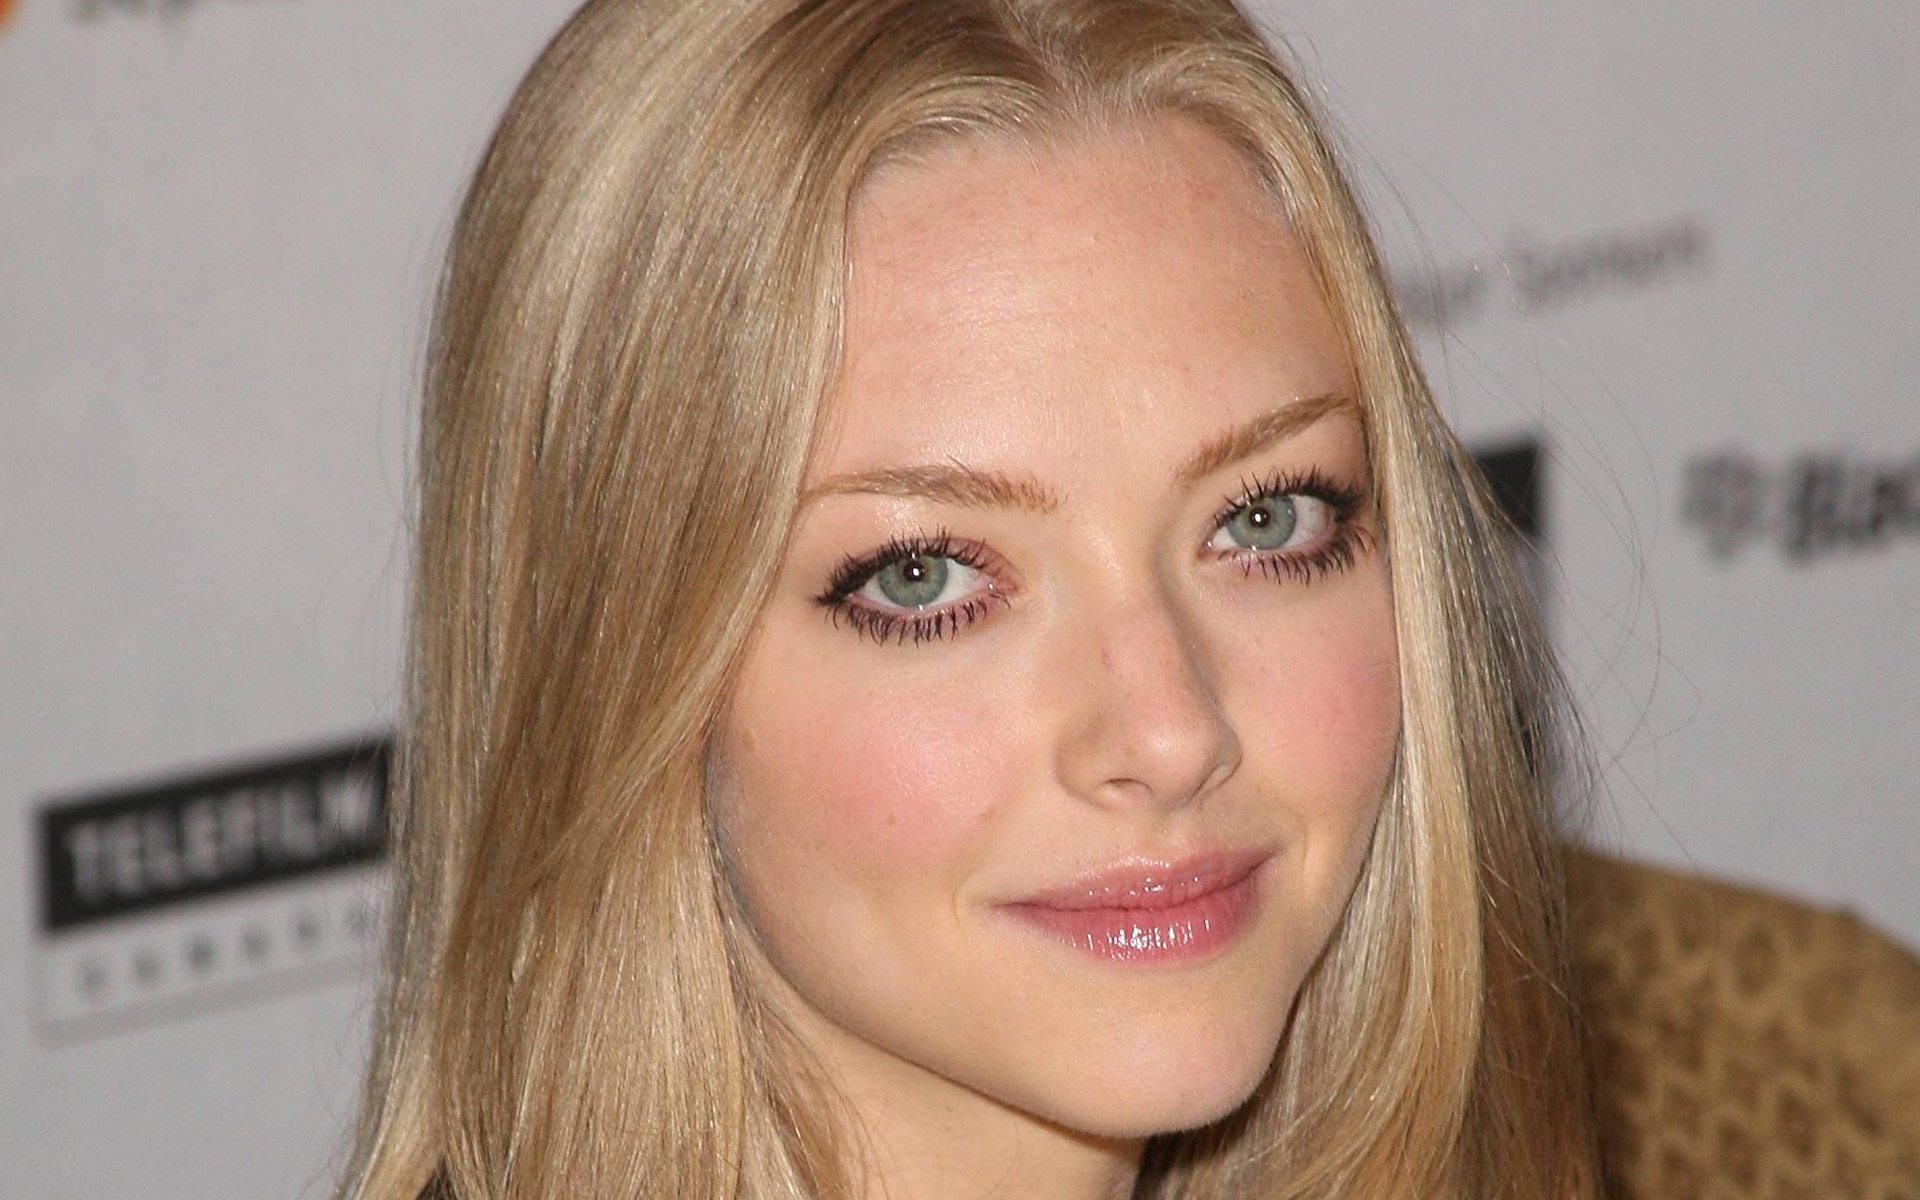 Amanda Seyfried #003 - 1920x1200 Wallpapers Pictures Photos Images